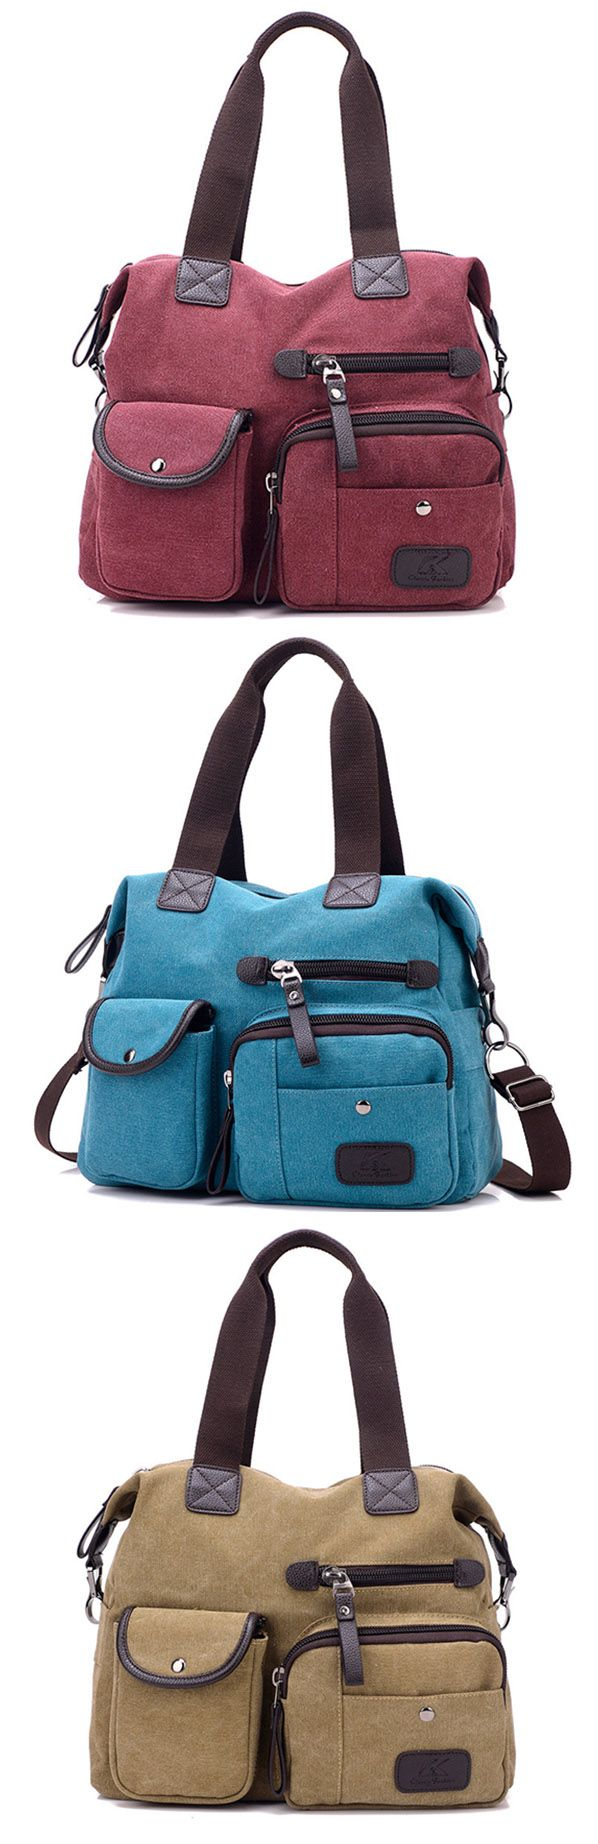 Women Canvas Large Capacity Sport Travel Casual Handbag Crossbody Female Shoulder Bag Bags And Canvases